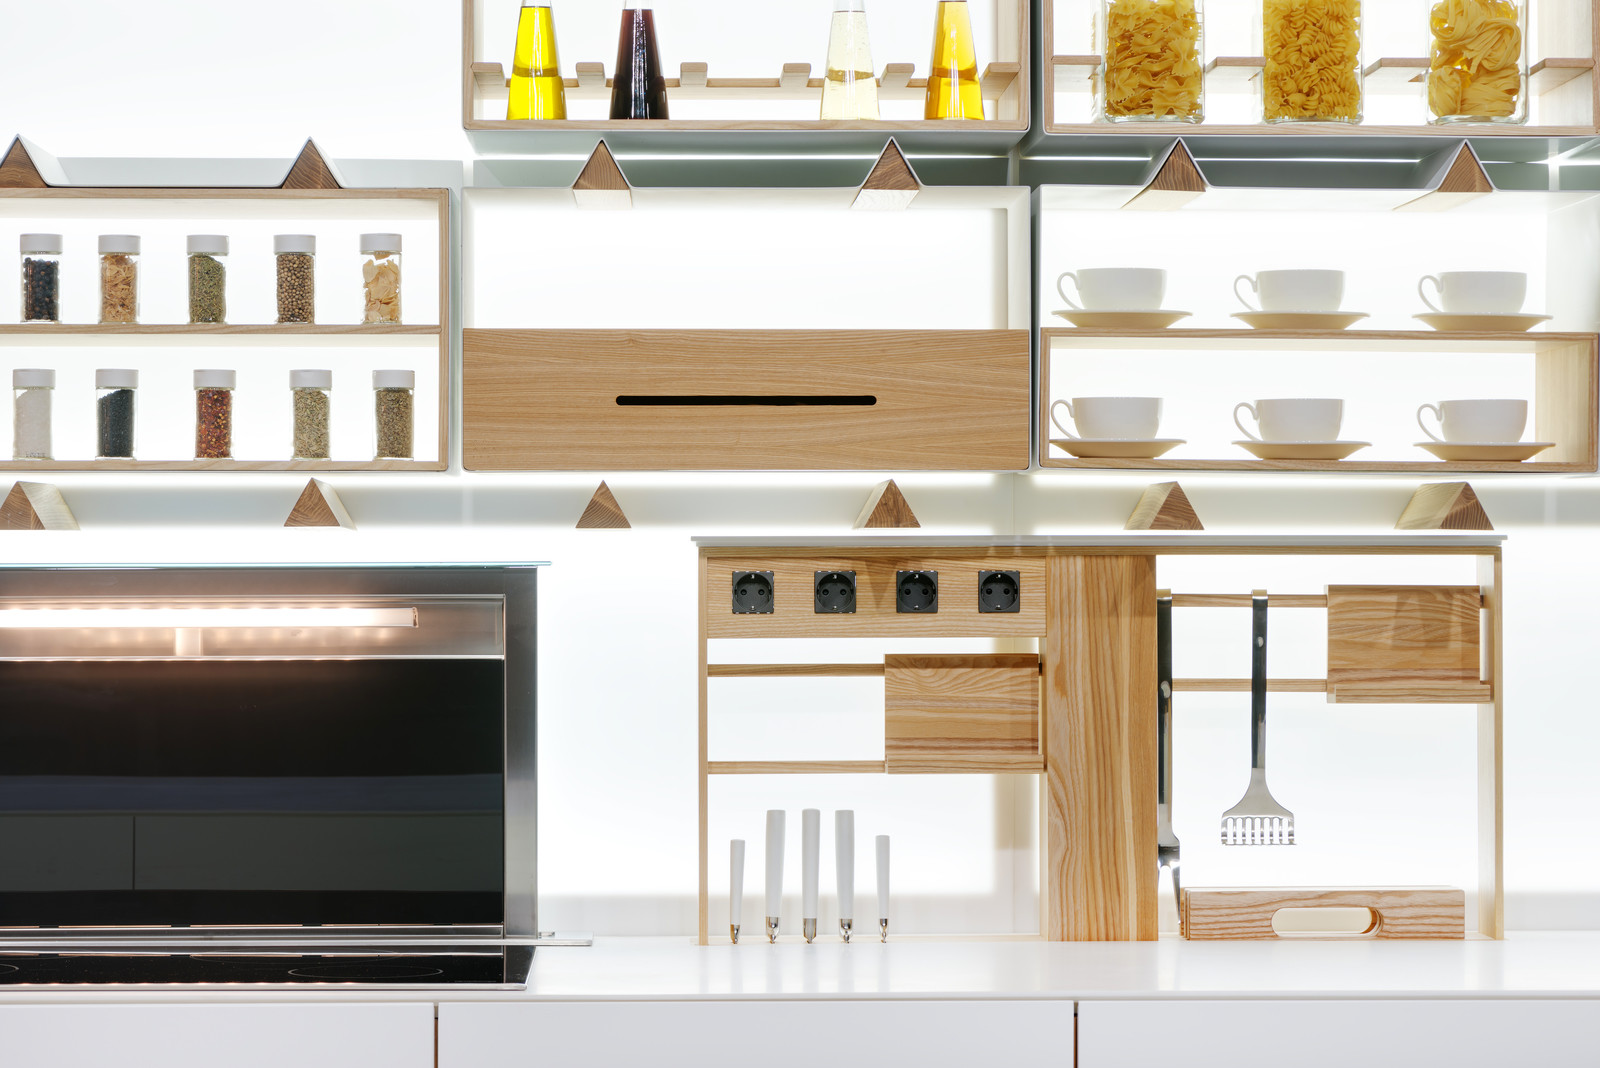 Modular backlit kitchen